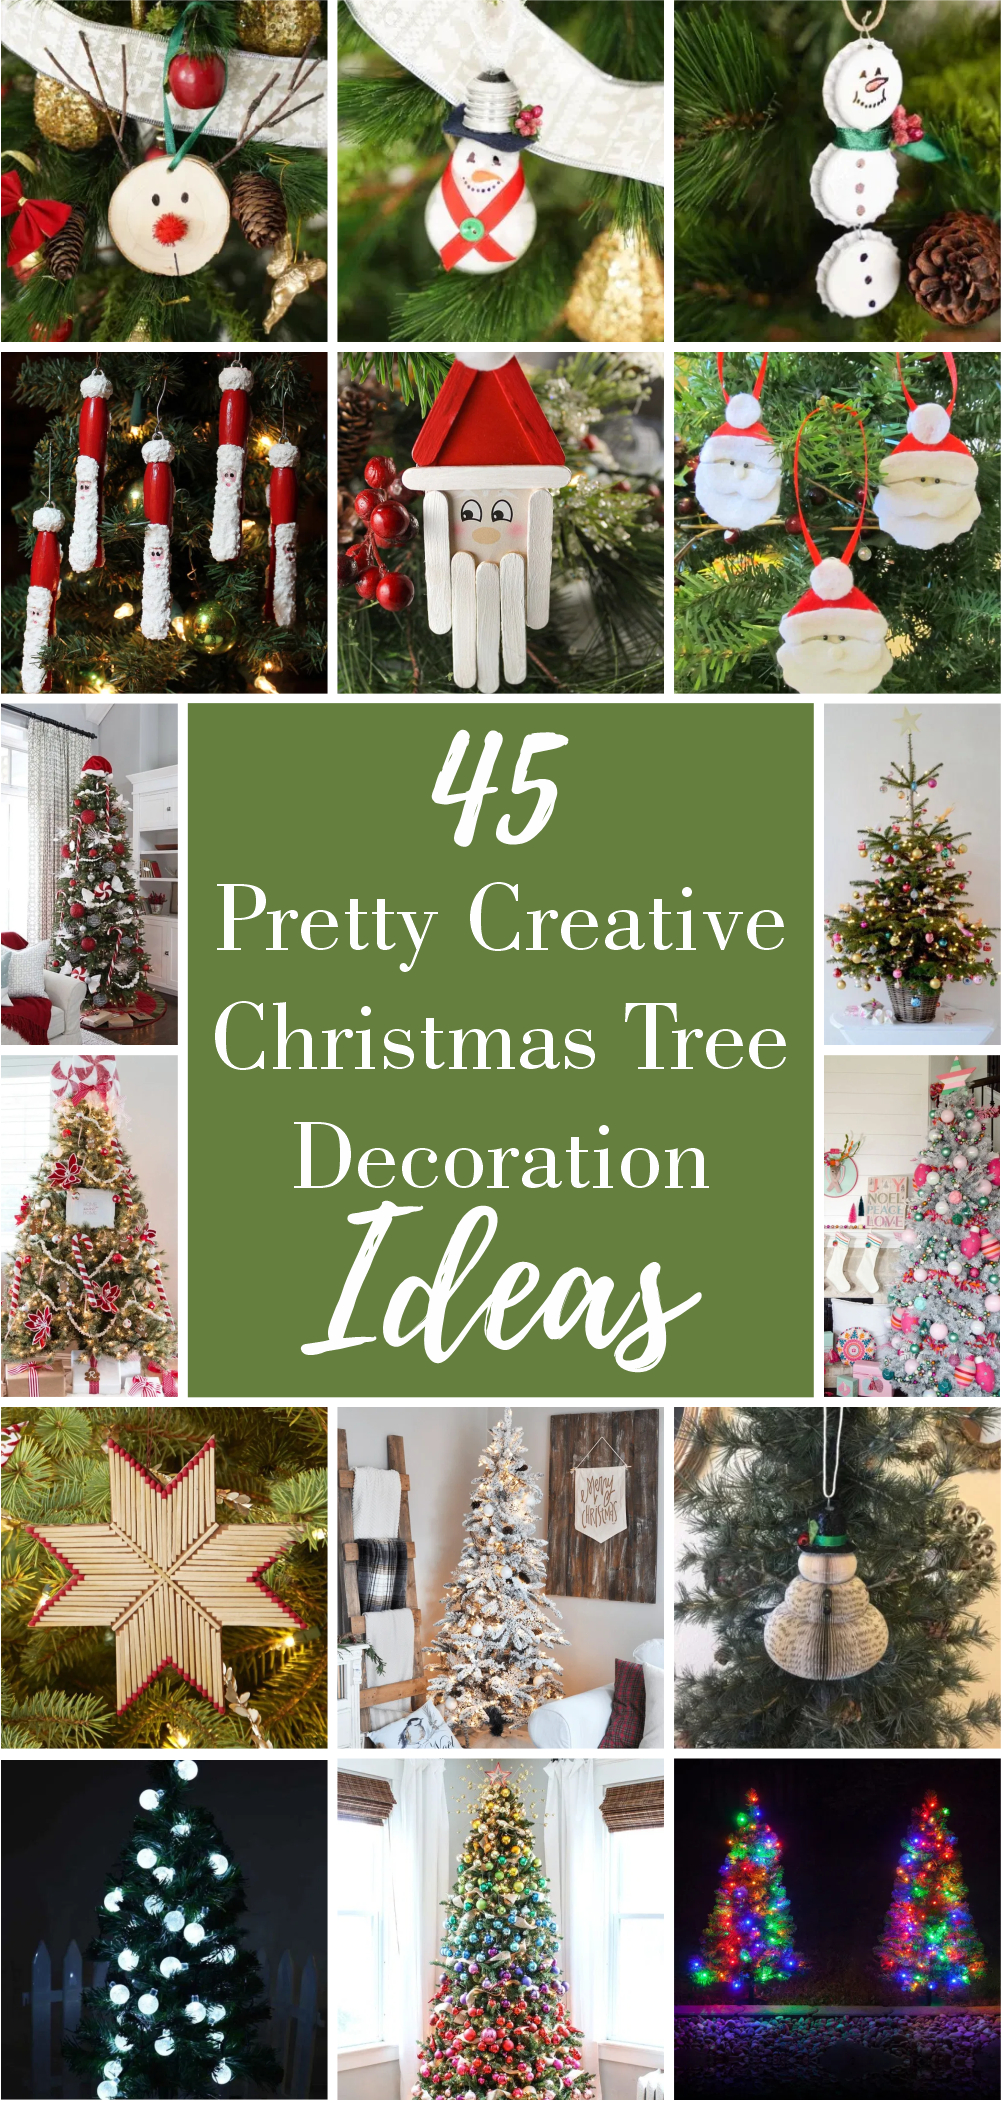 45 pretty creative christmas tree decoration ideas 1